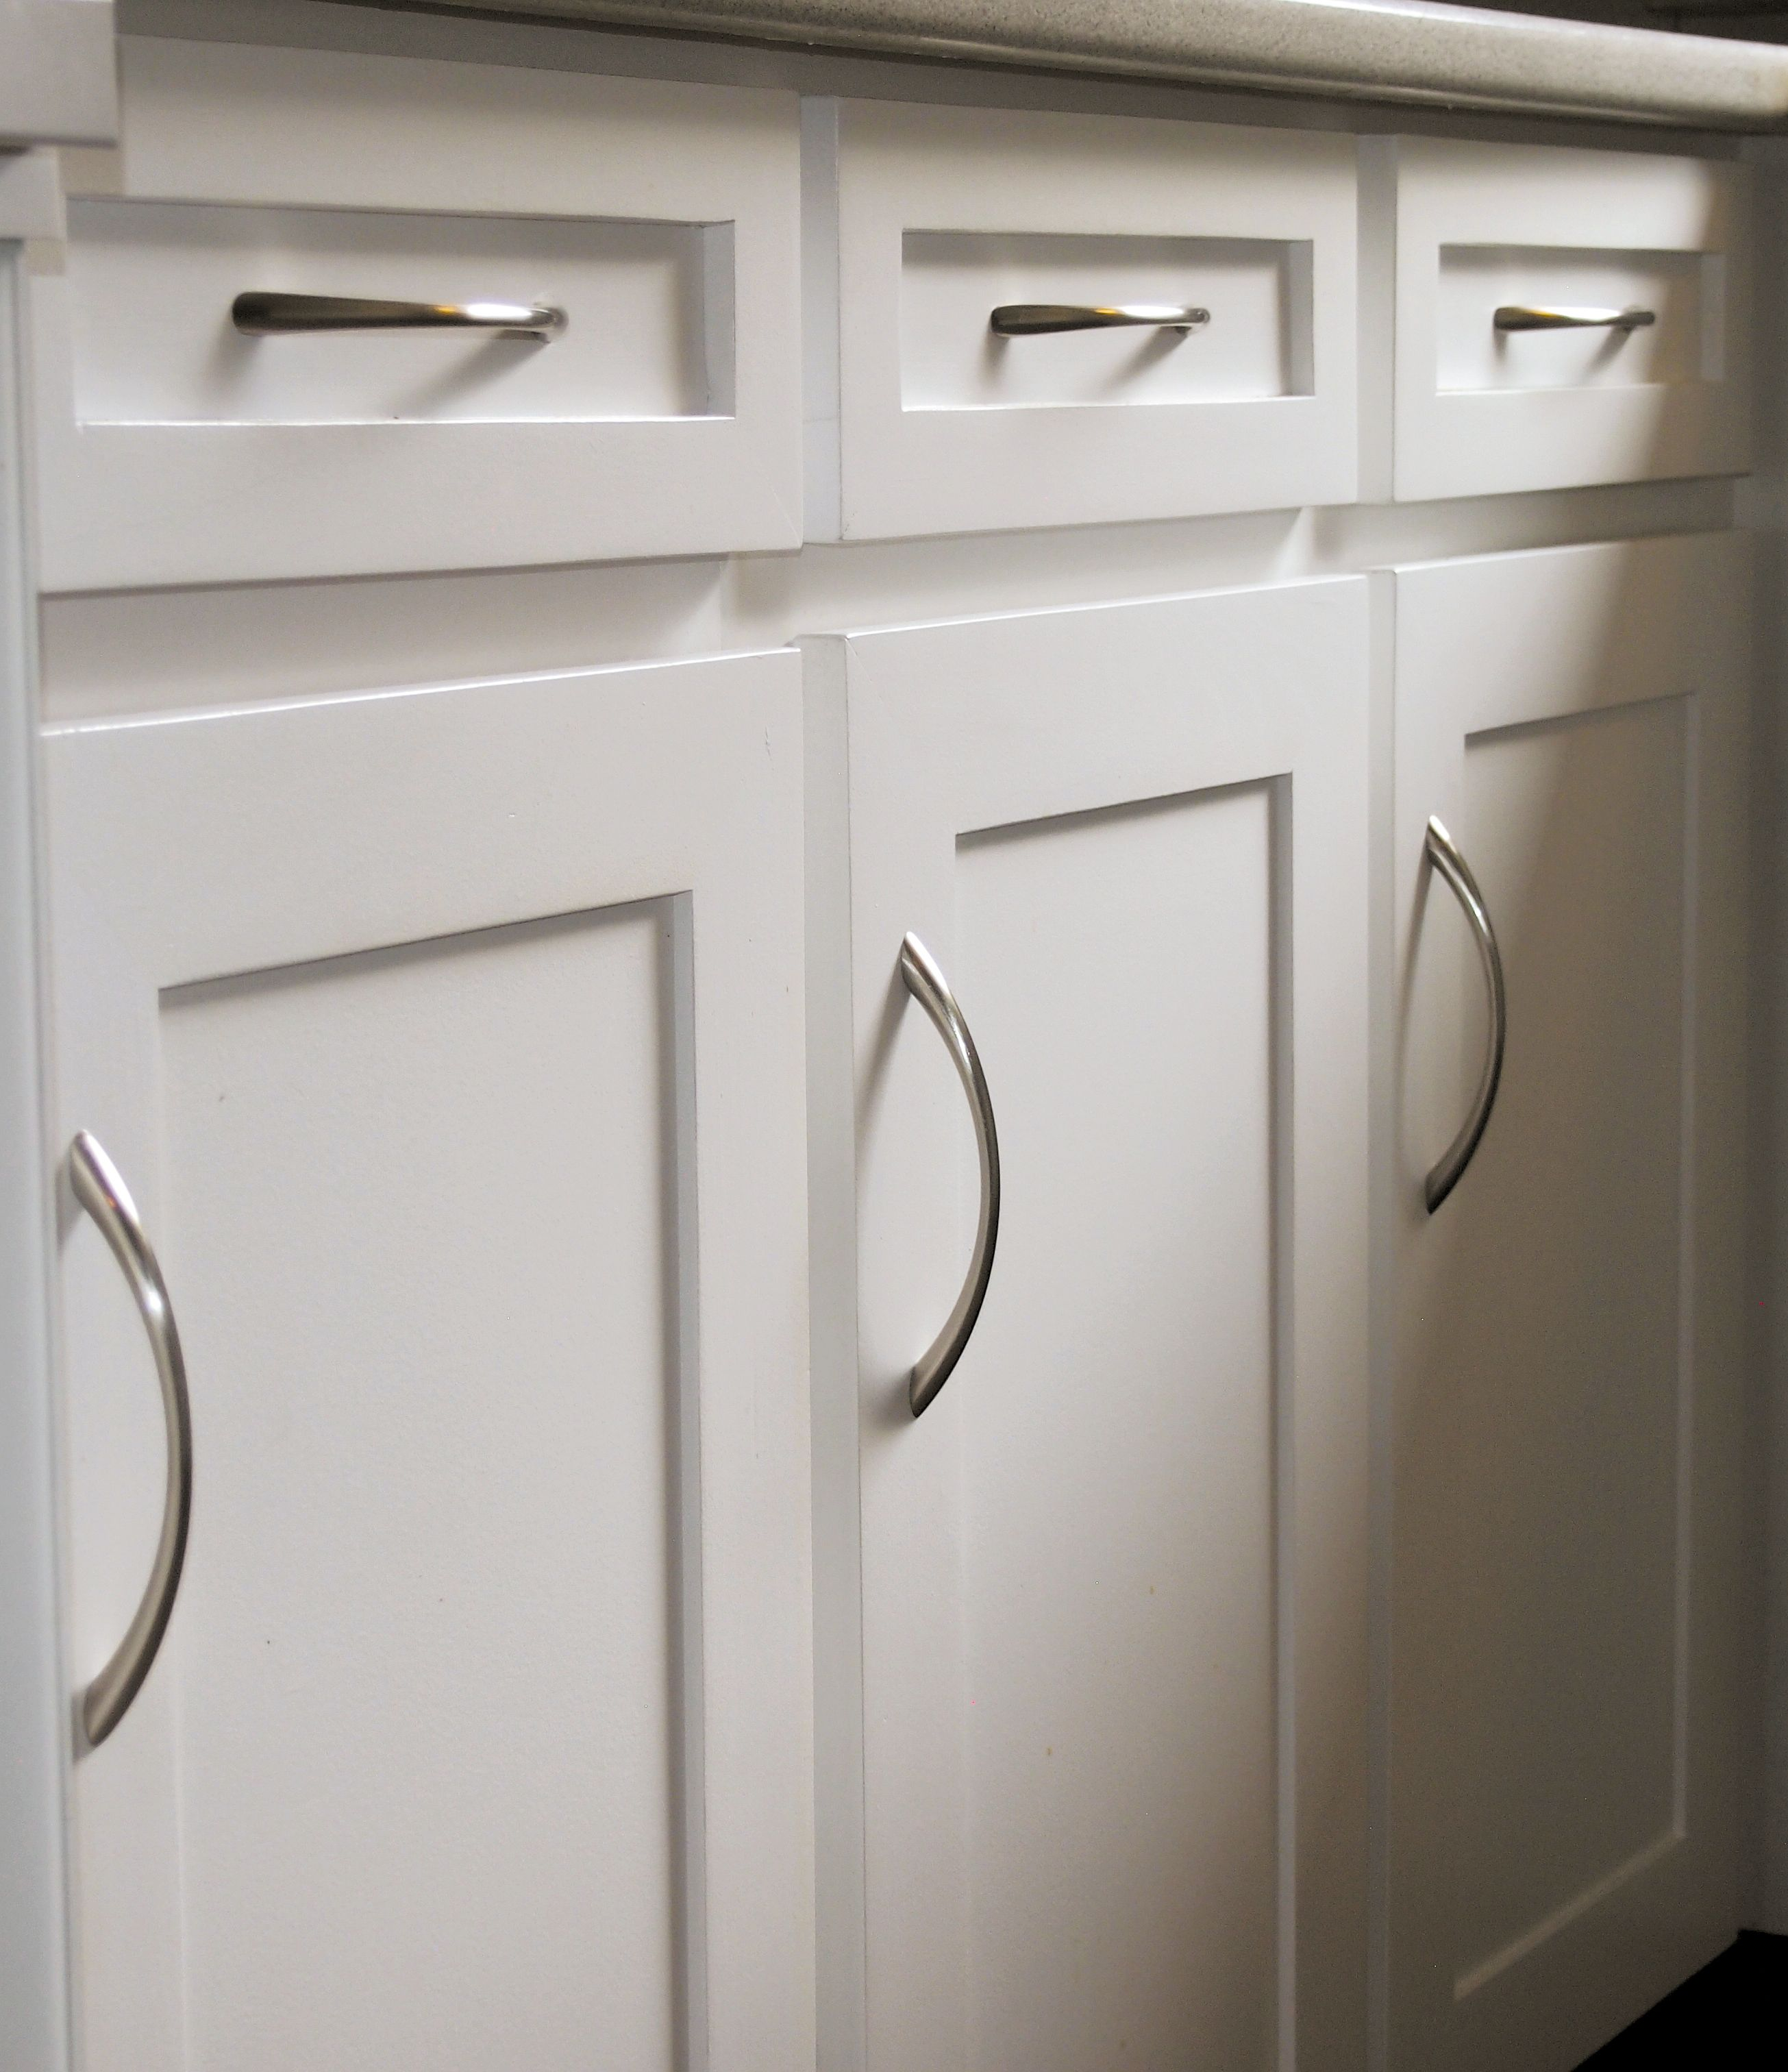 Clean Simple Kitchen Cabinet Doors And Drawer Fronts With Bow Pulls Finished White Water Based Melamine Paint